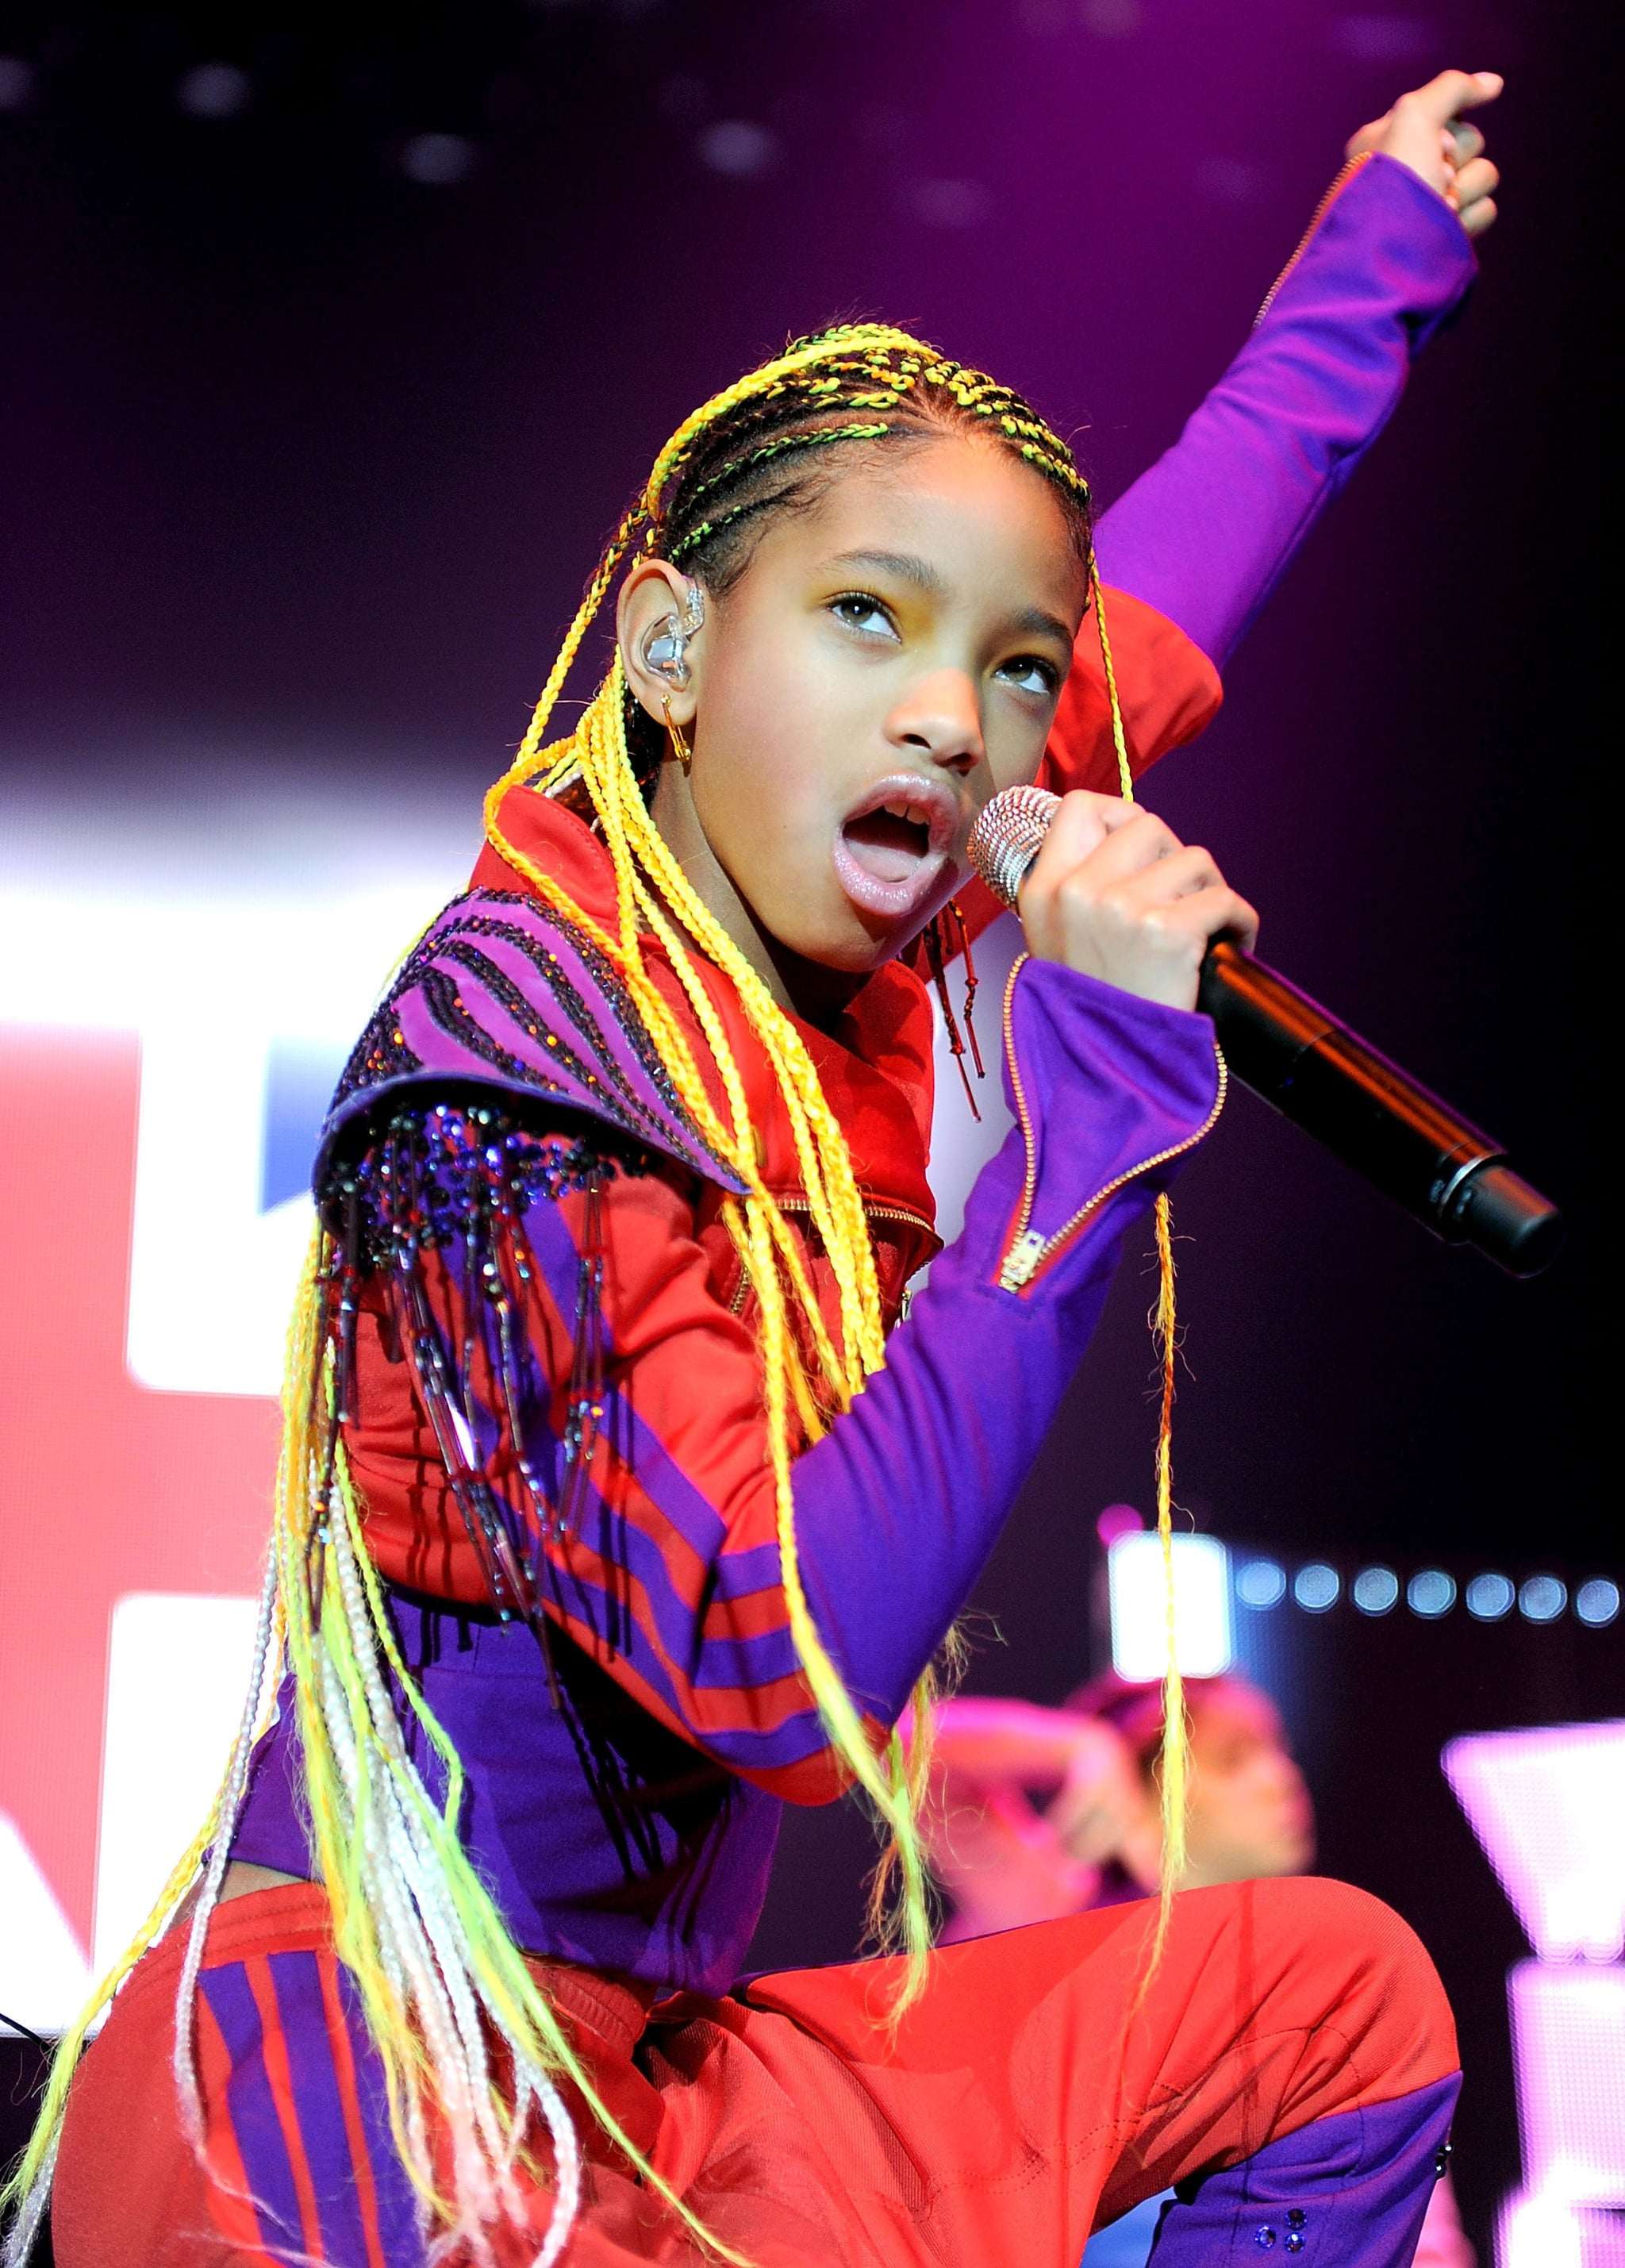 Waist Skimming Yellow Cornrows Help Willow Whip Her Hair